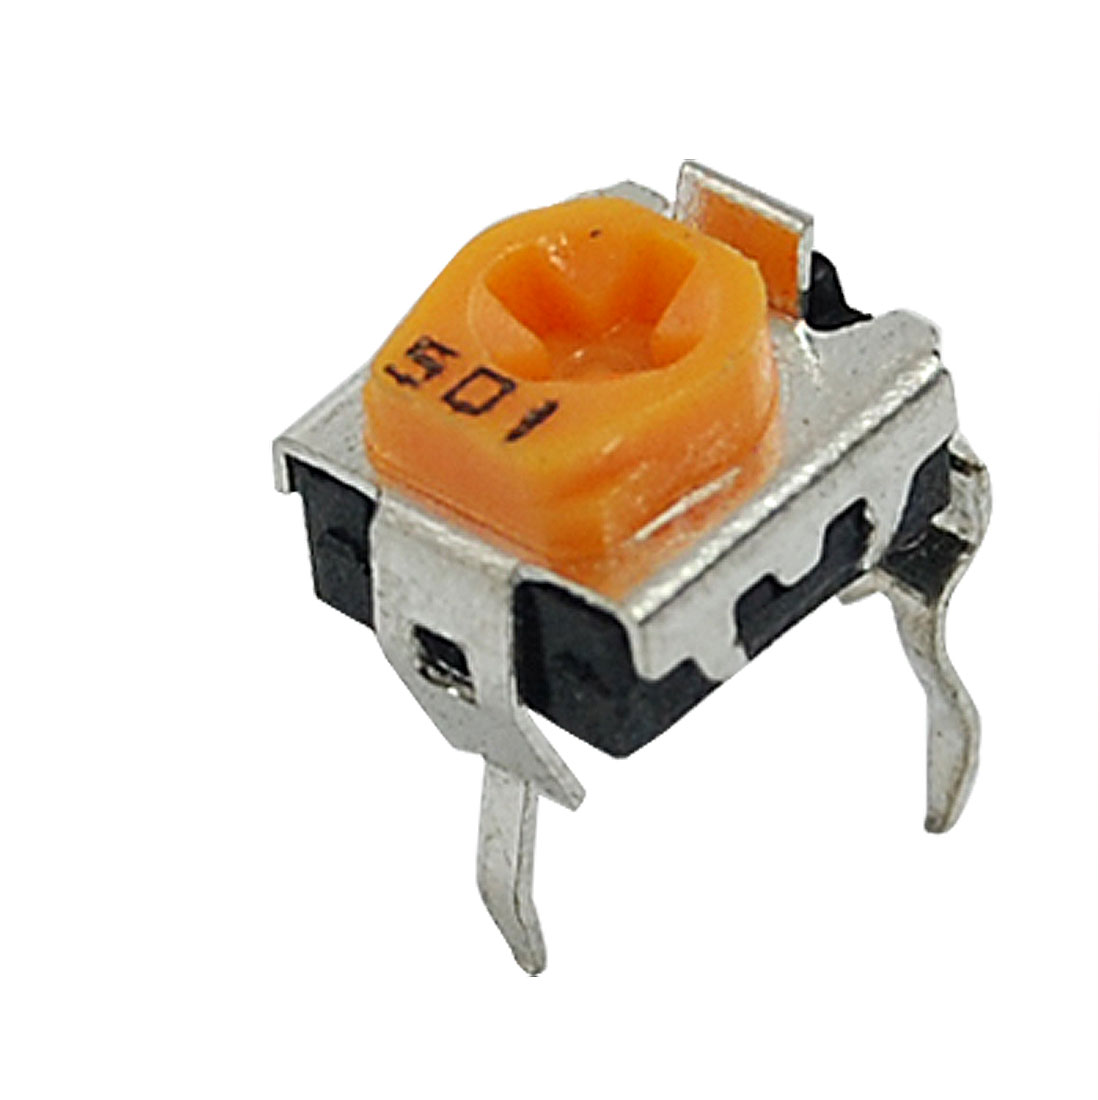 105 1M OHM Variable Resistor Trimmer Pot Potentiometer 100 Pcs